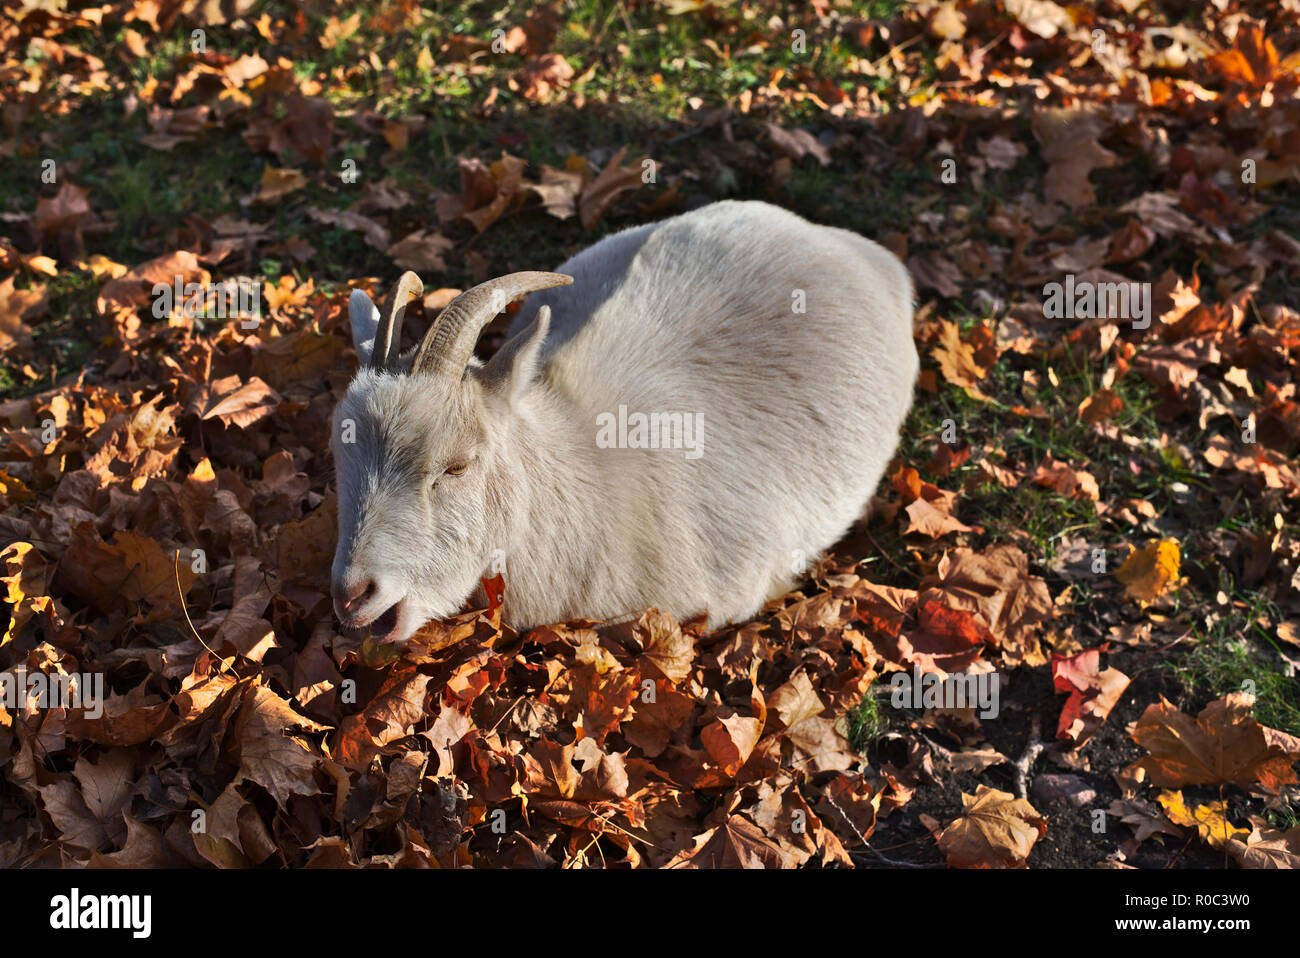 Goat in the Swedish town. - Stock Image